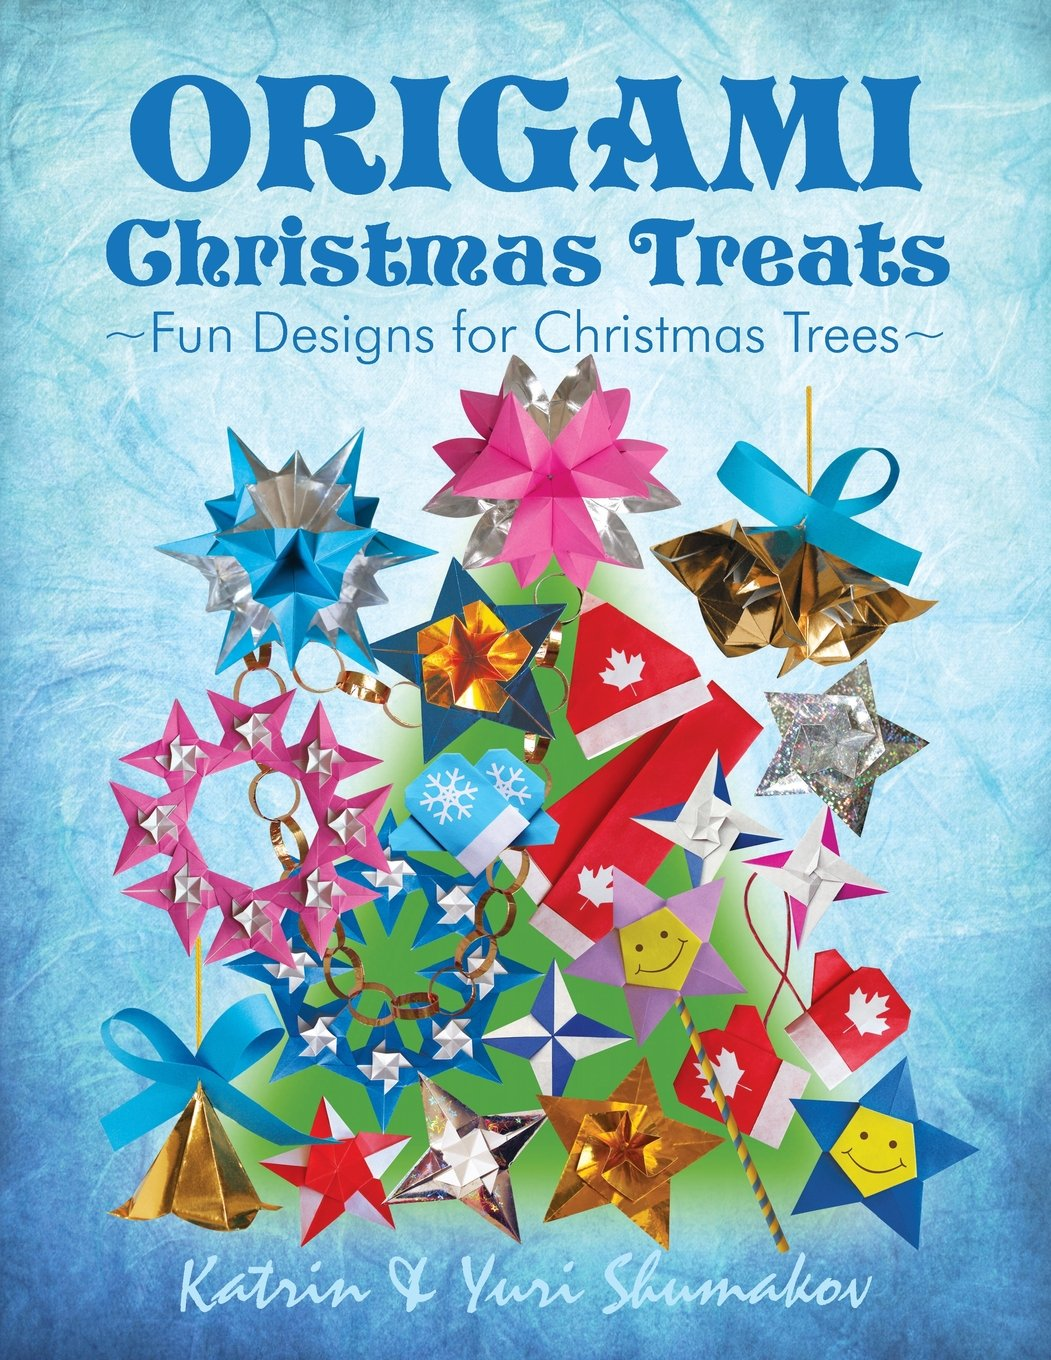 Origami Christmas Treats: Paper Fun for Christmas Trees (Origami Holiday) (Volume 1) ePub fb2 ebook